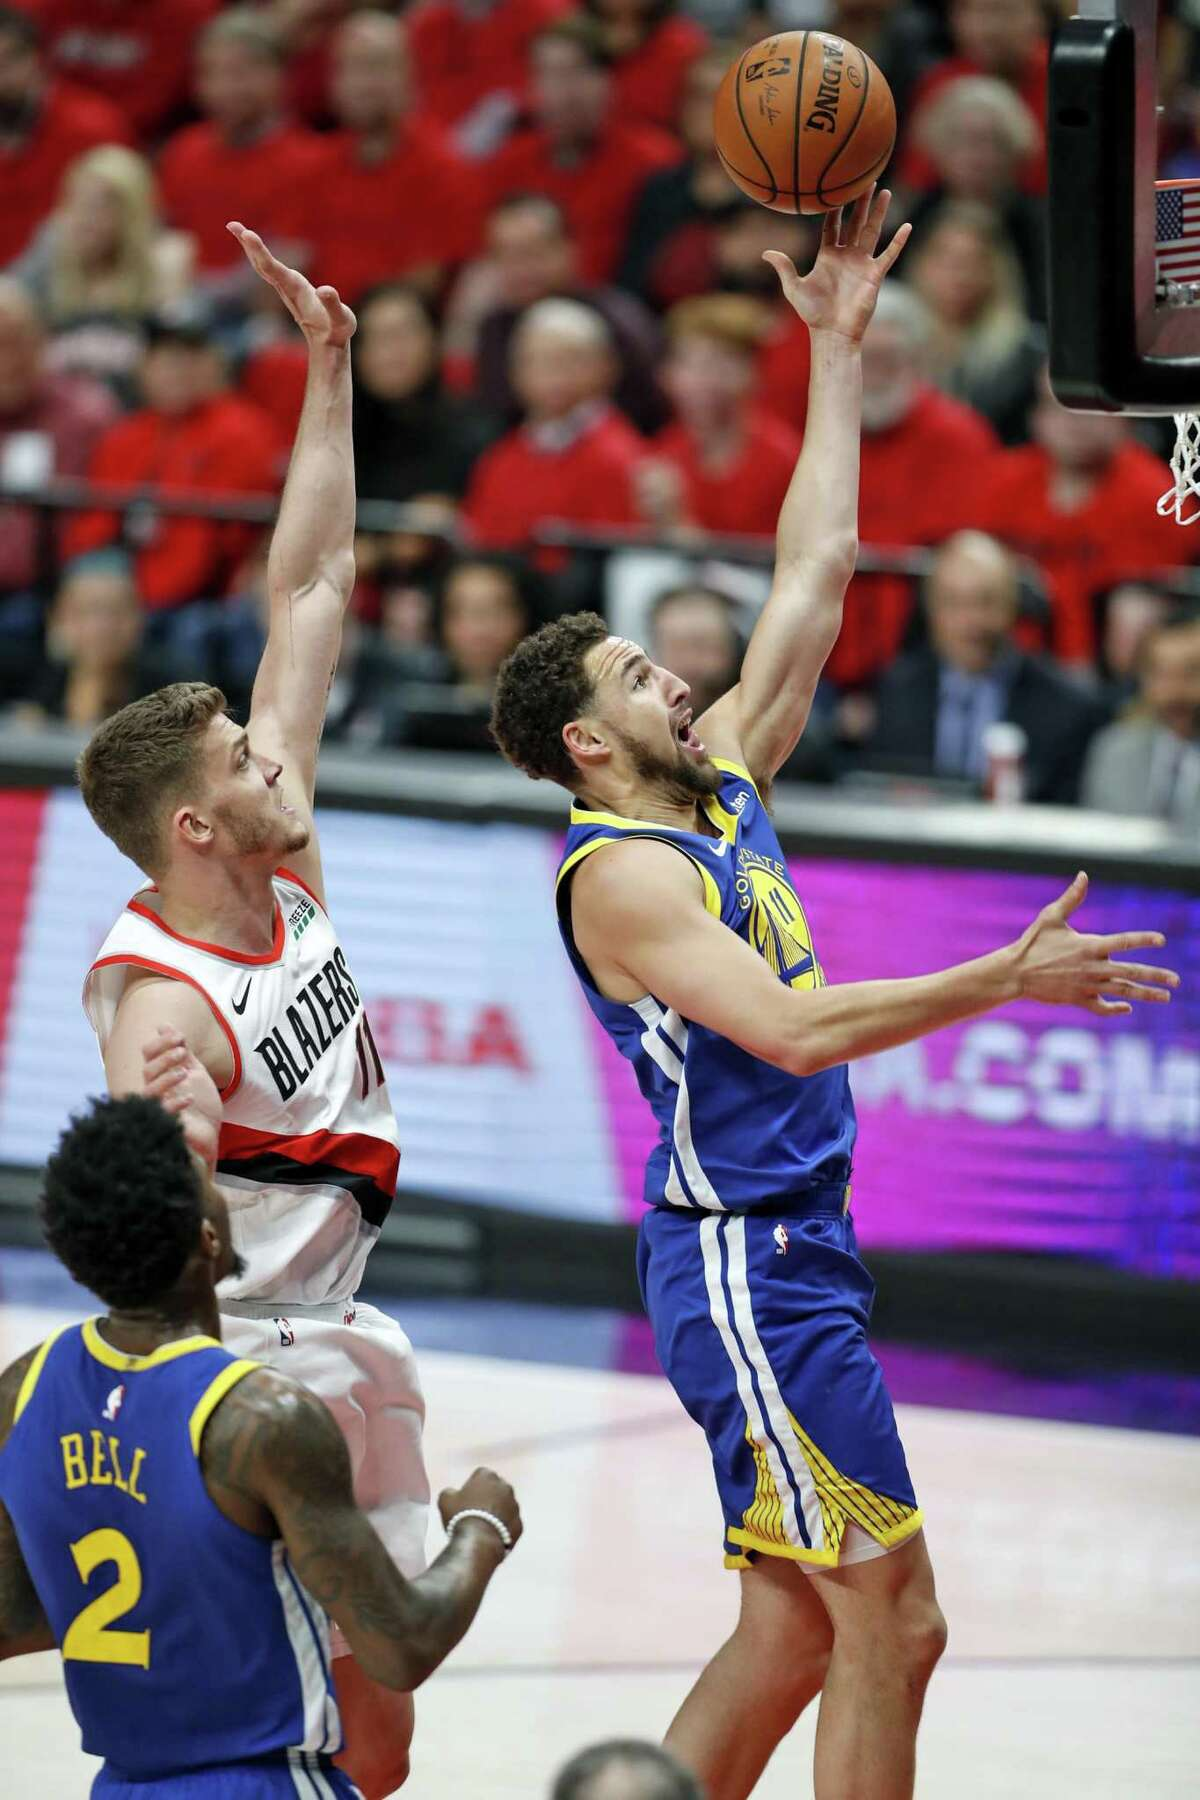 Golden State Warriors' Klay Thompson scores in front of Portland Trail Blazers' Meyers Leonard in 1st quarter during NBA Western Conference Finals' Game 4 at Moda Center in Portland, Oregon on Monday, May 20, 2019.